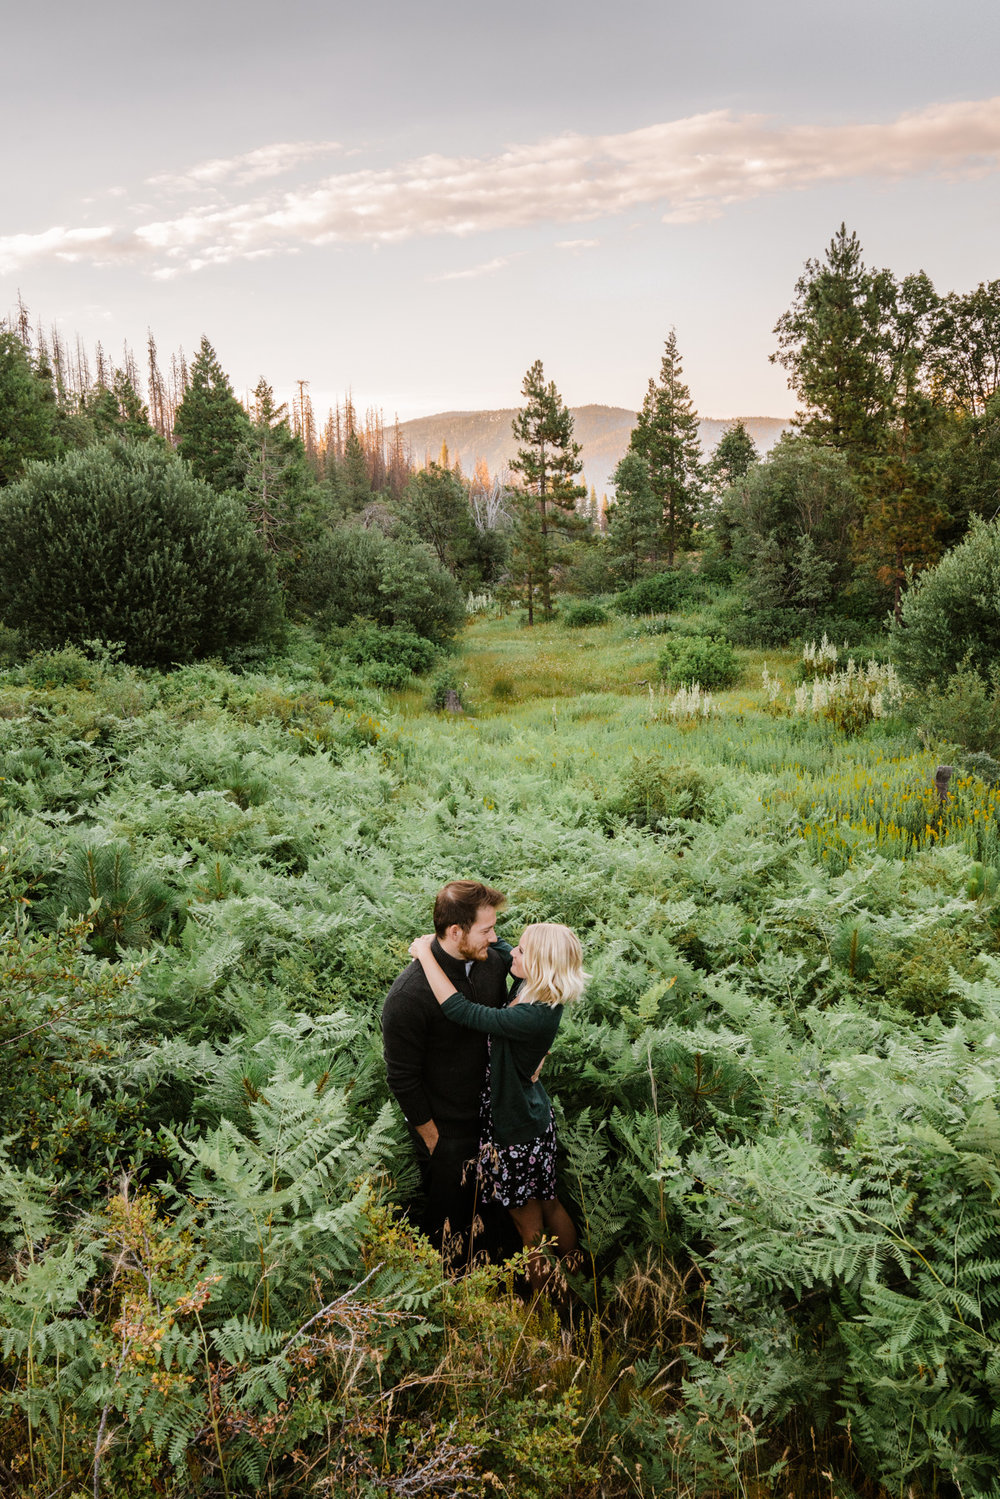 Shaver Lake Engagement Portraits - Meghan and Clay -  by Bessie Young Photography 2018 A7R2-6.jpg